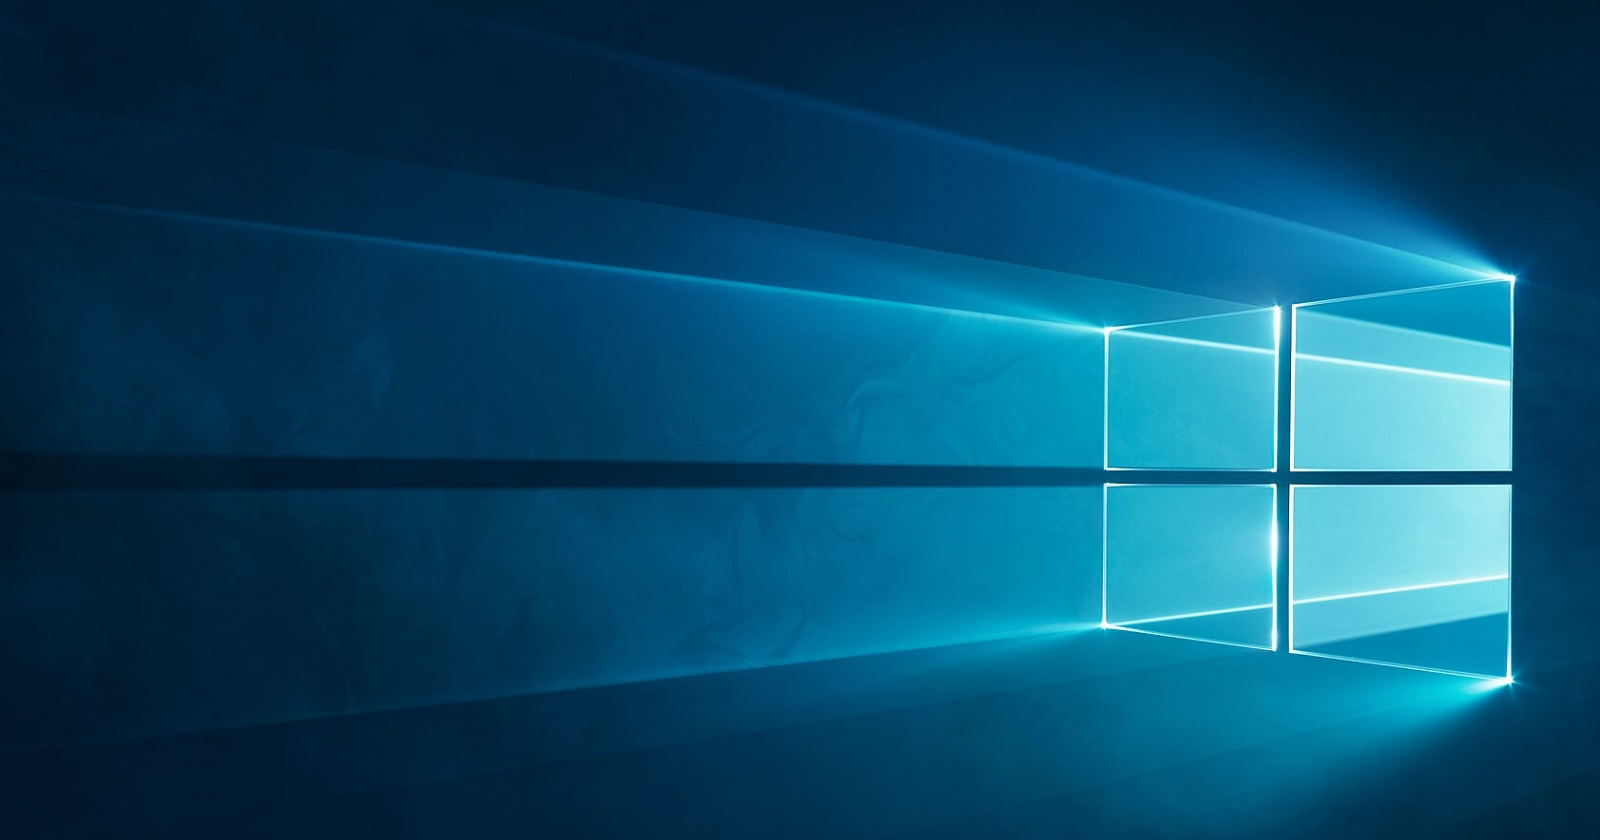 Give the new Windows 10 update a try if you've these critical issues - WindowsLatest